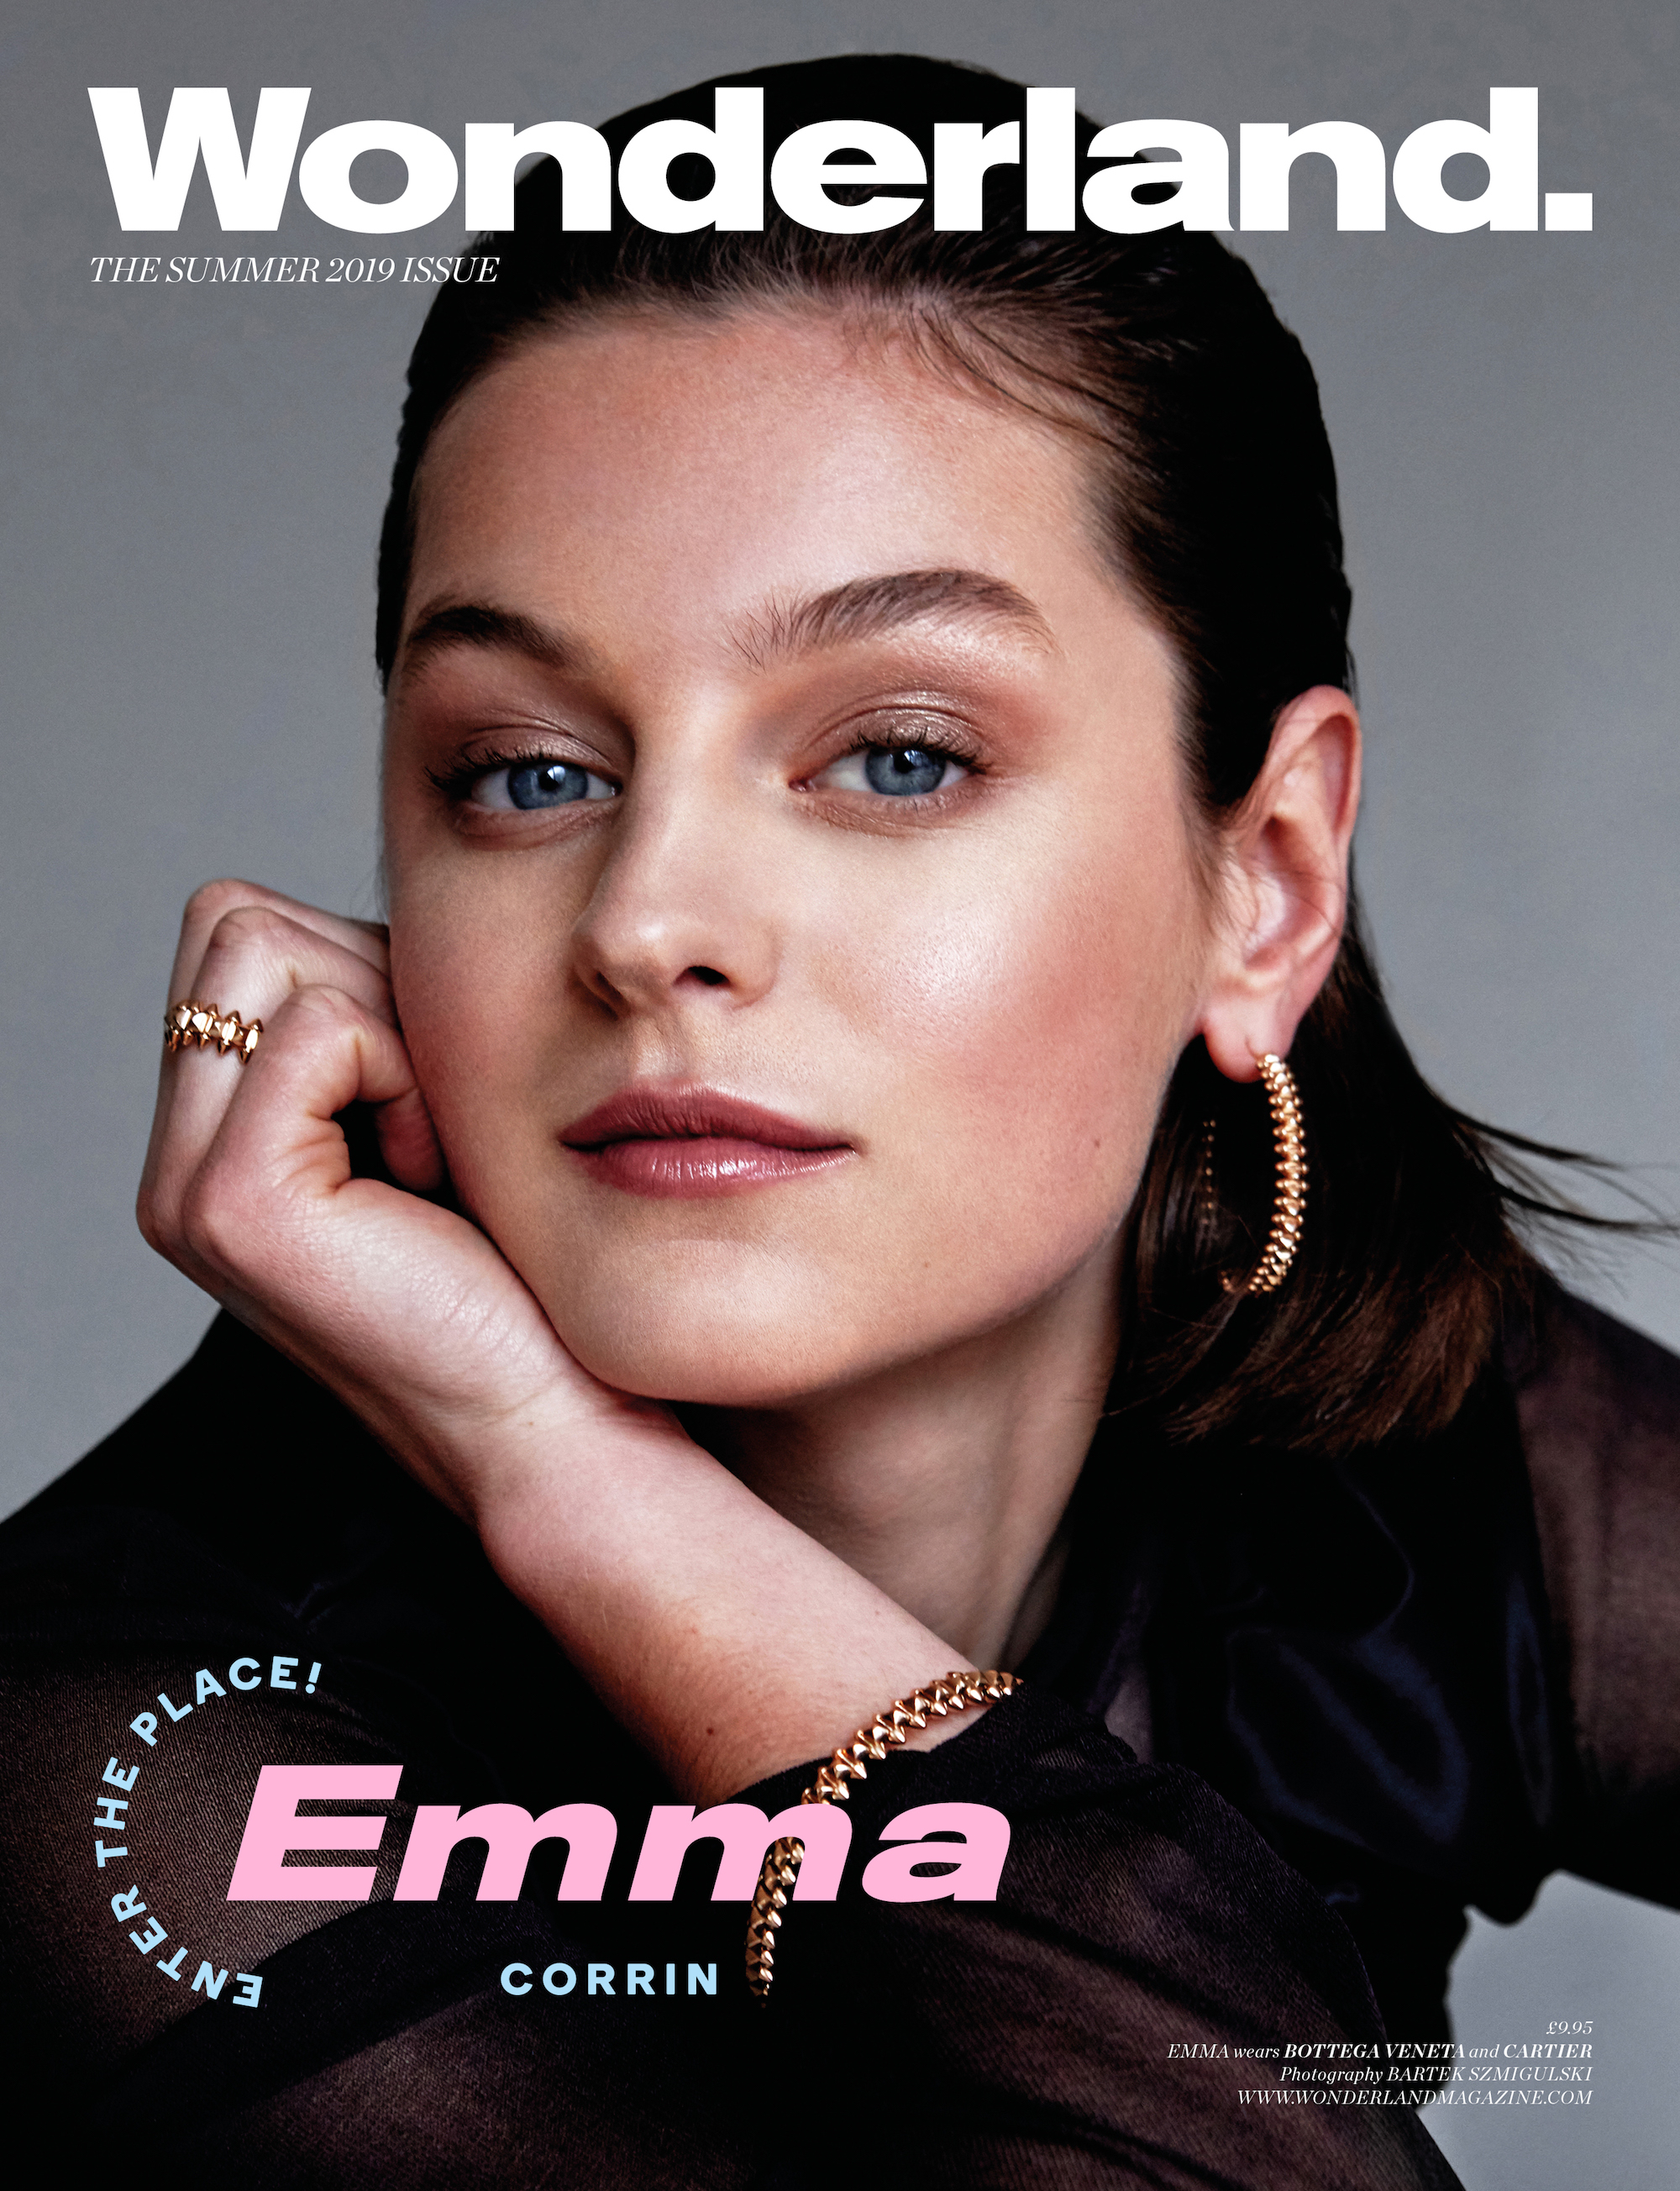 Emma Corrin from The Crown on the Summer 19 issue of Wonderland